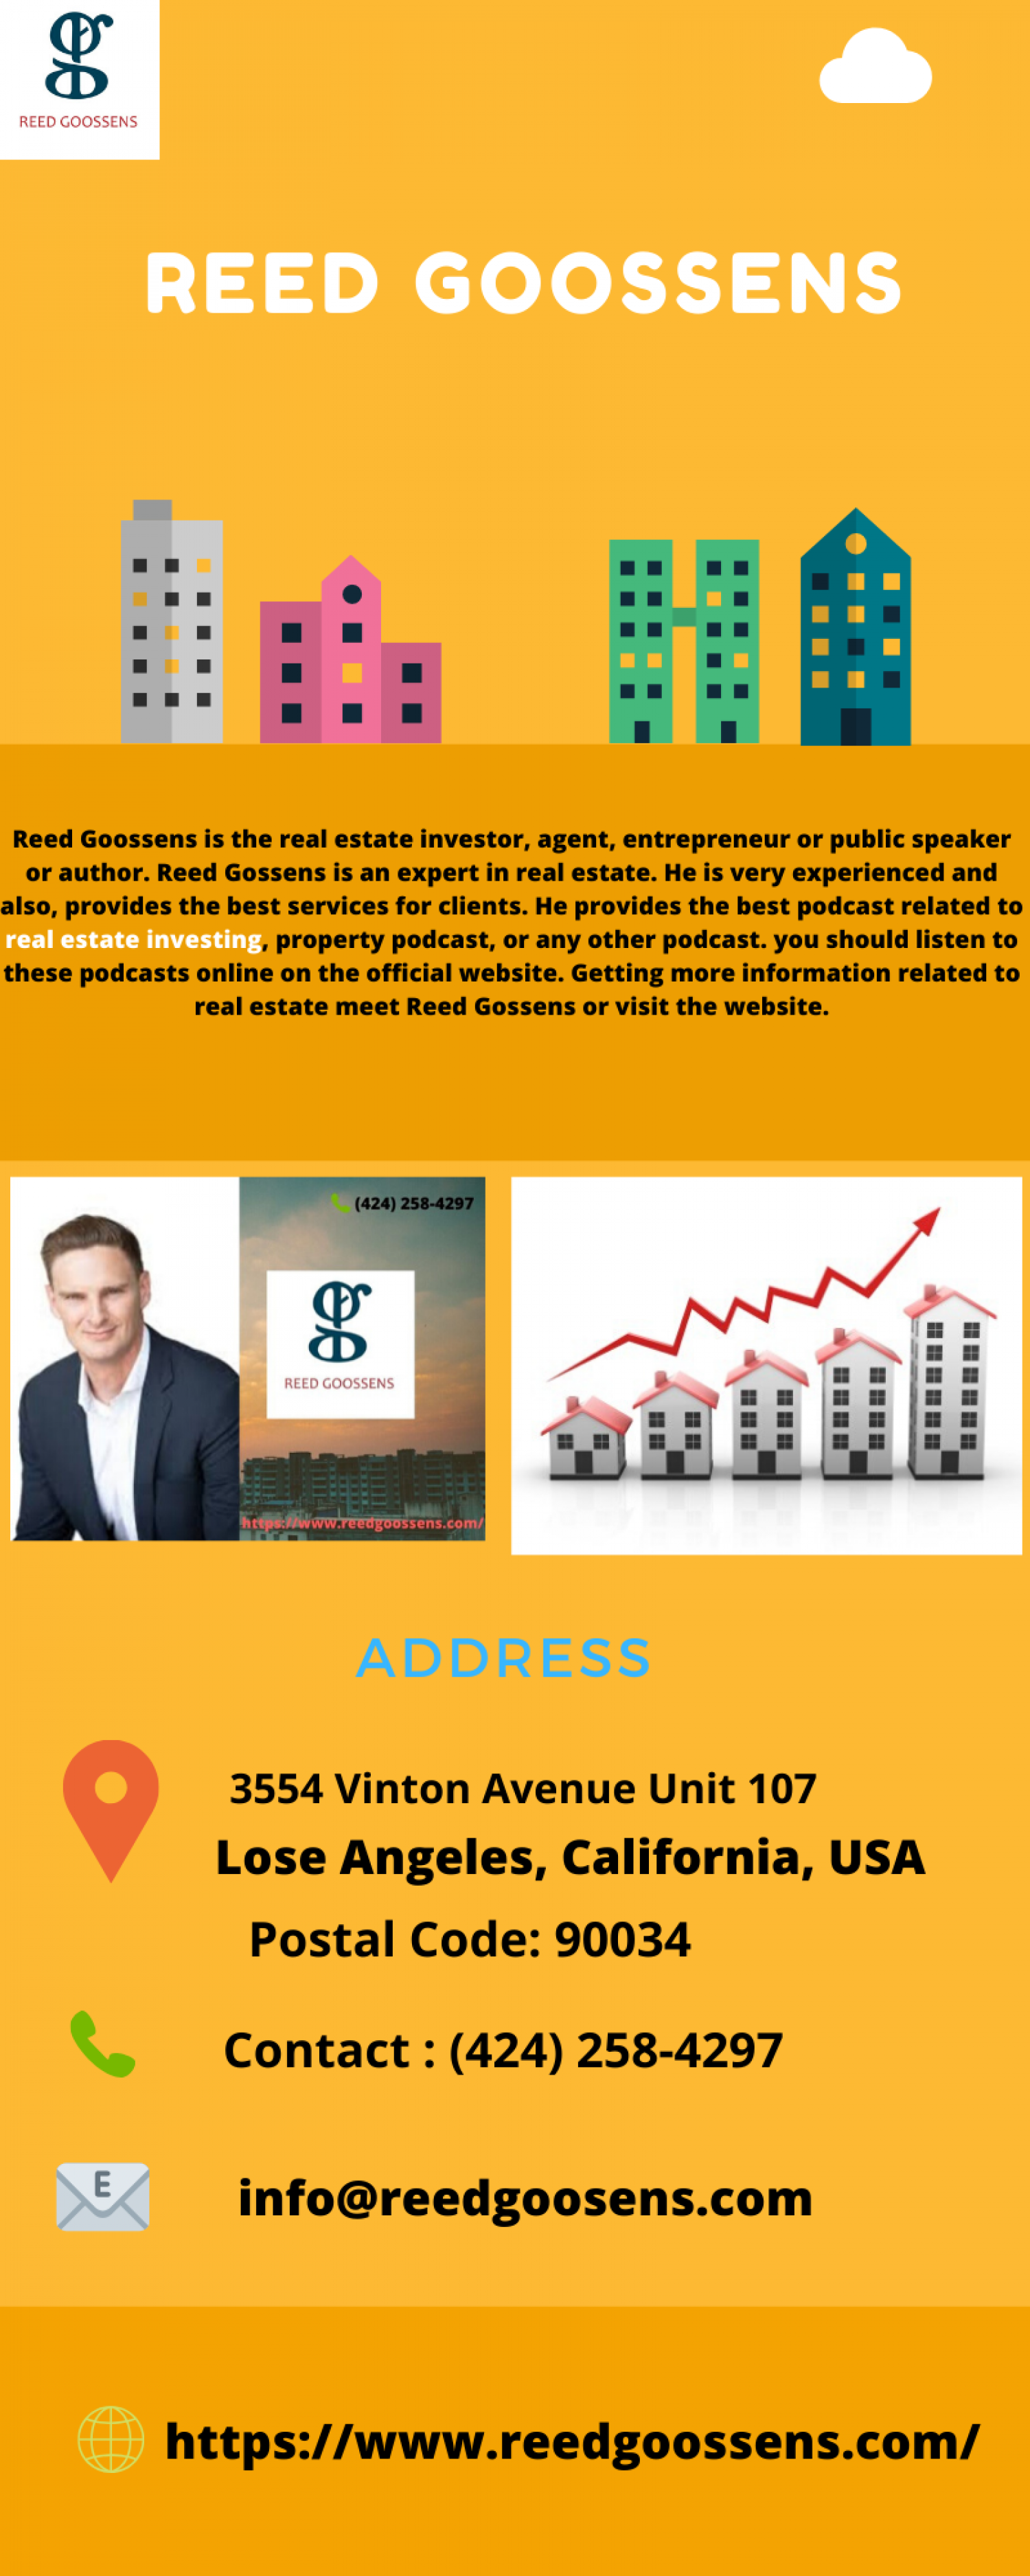 Real Estate Investing  - Reed Goossens Infographic